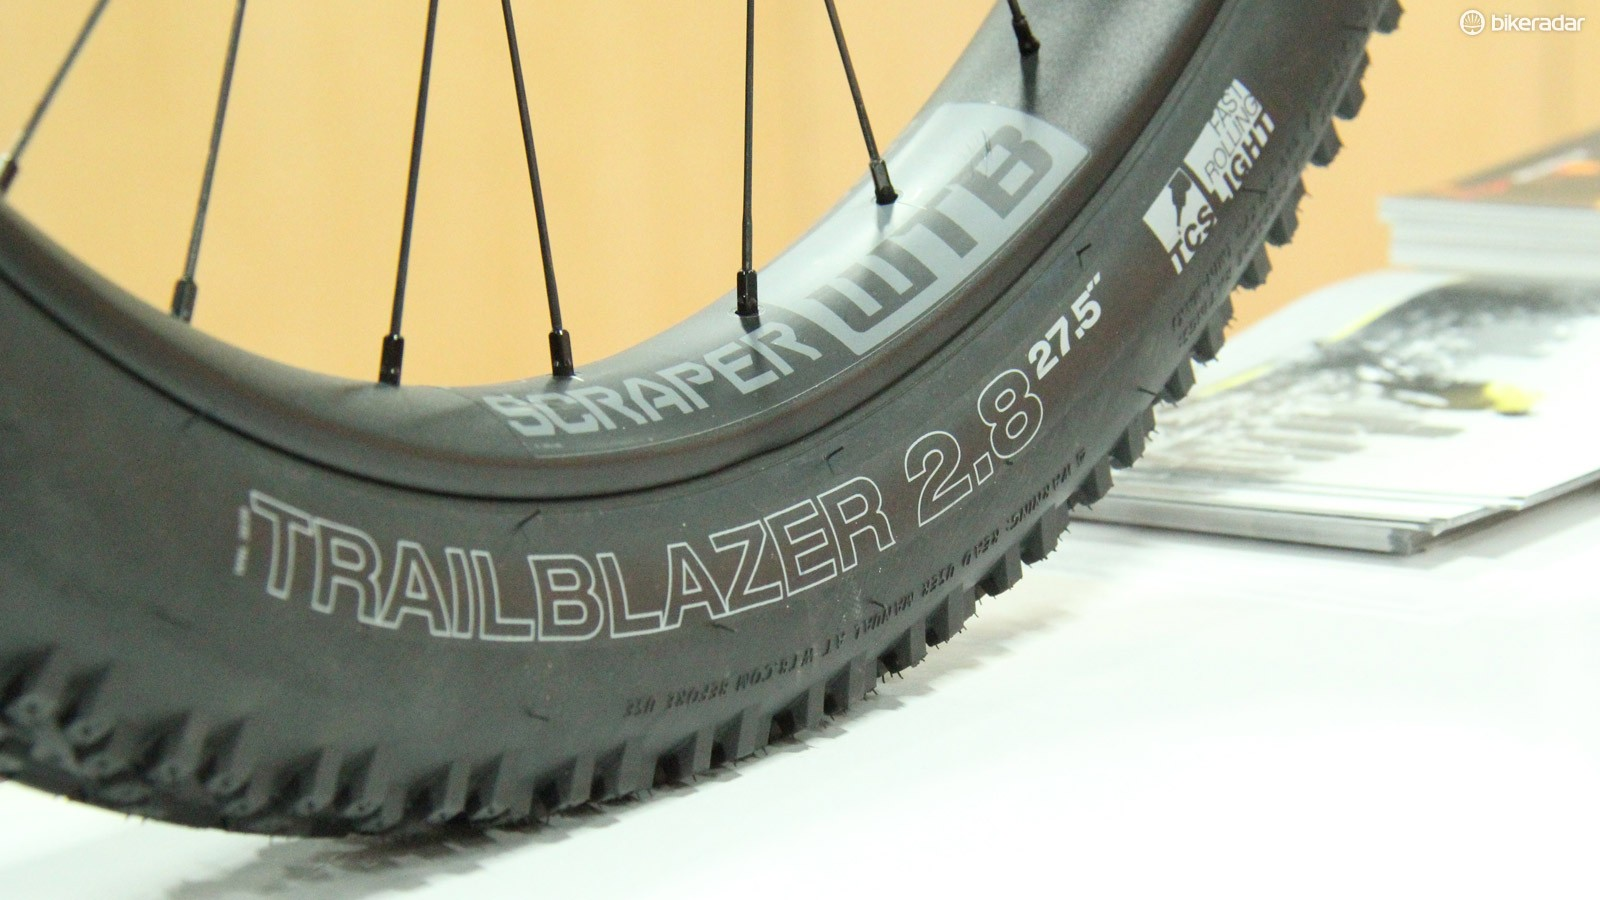 WTB has a new 27.5+ tyre and rim combo